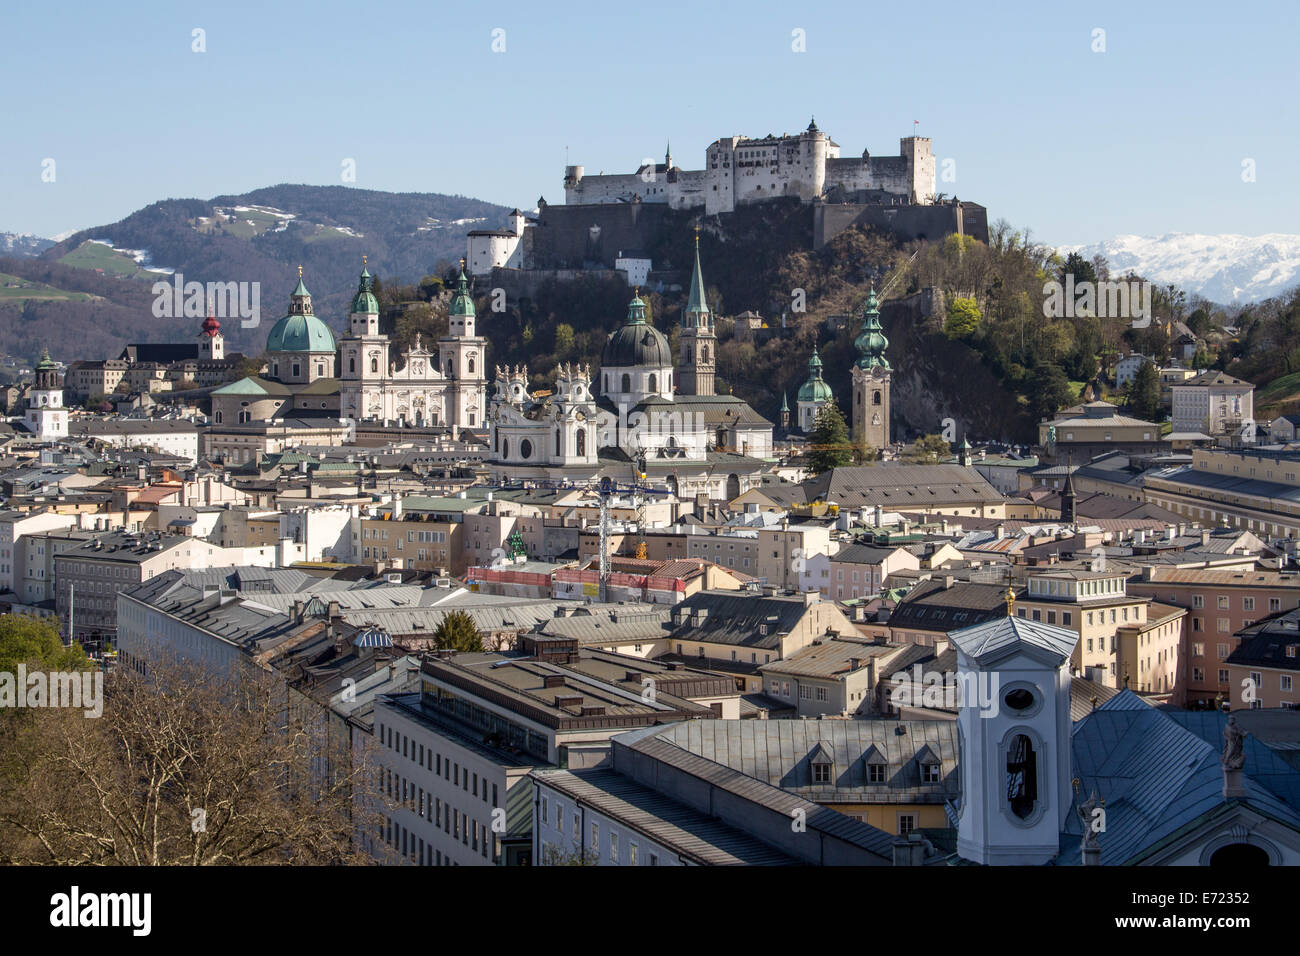 Austria: Historic Centre of the City of Salzburg at the river Salzach. Photo from 30 March 2014. - Stock Image